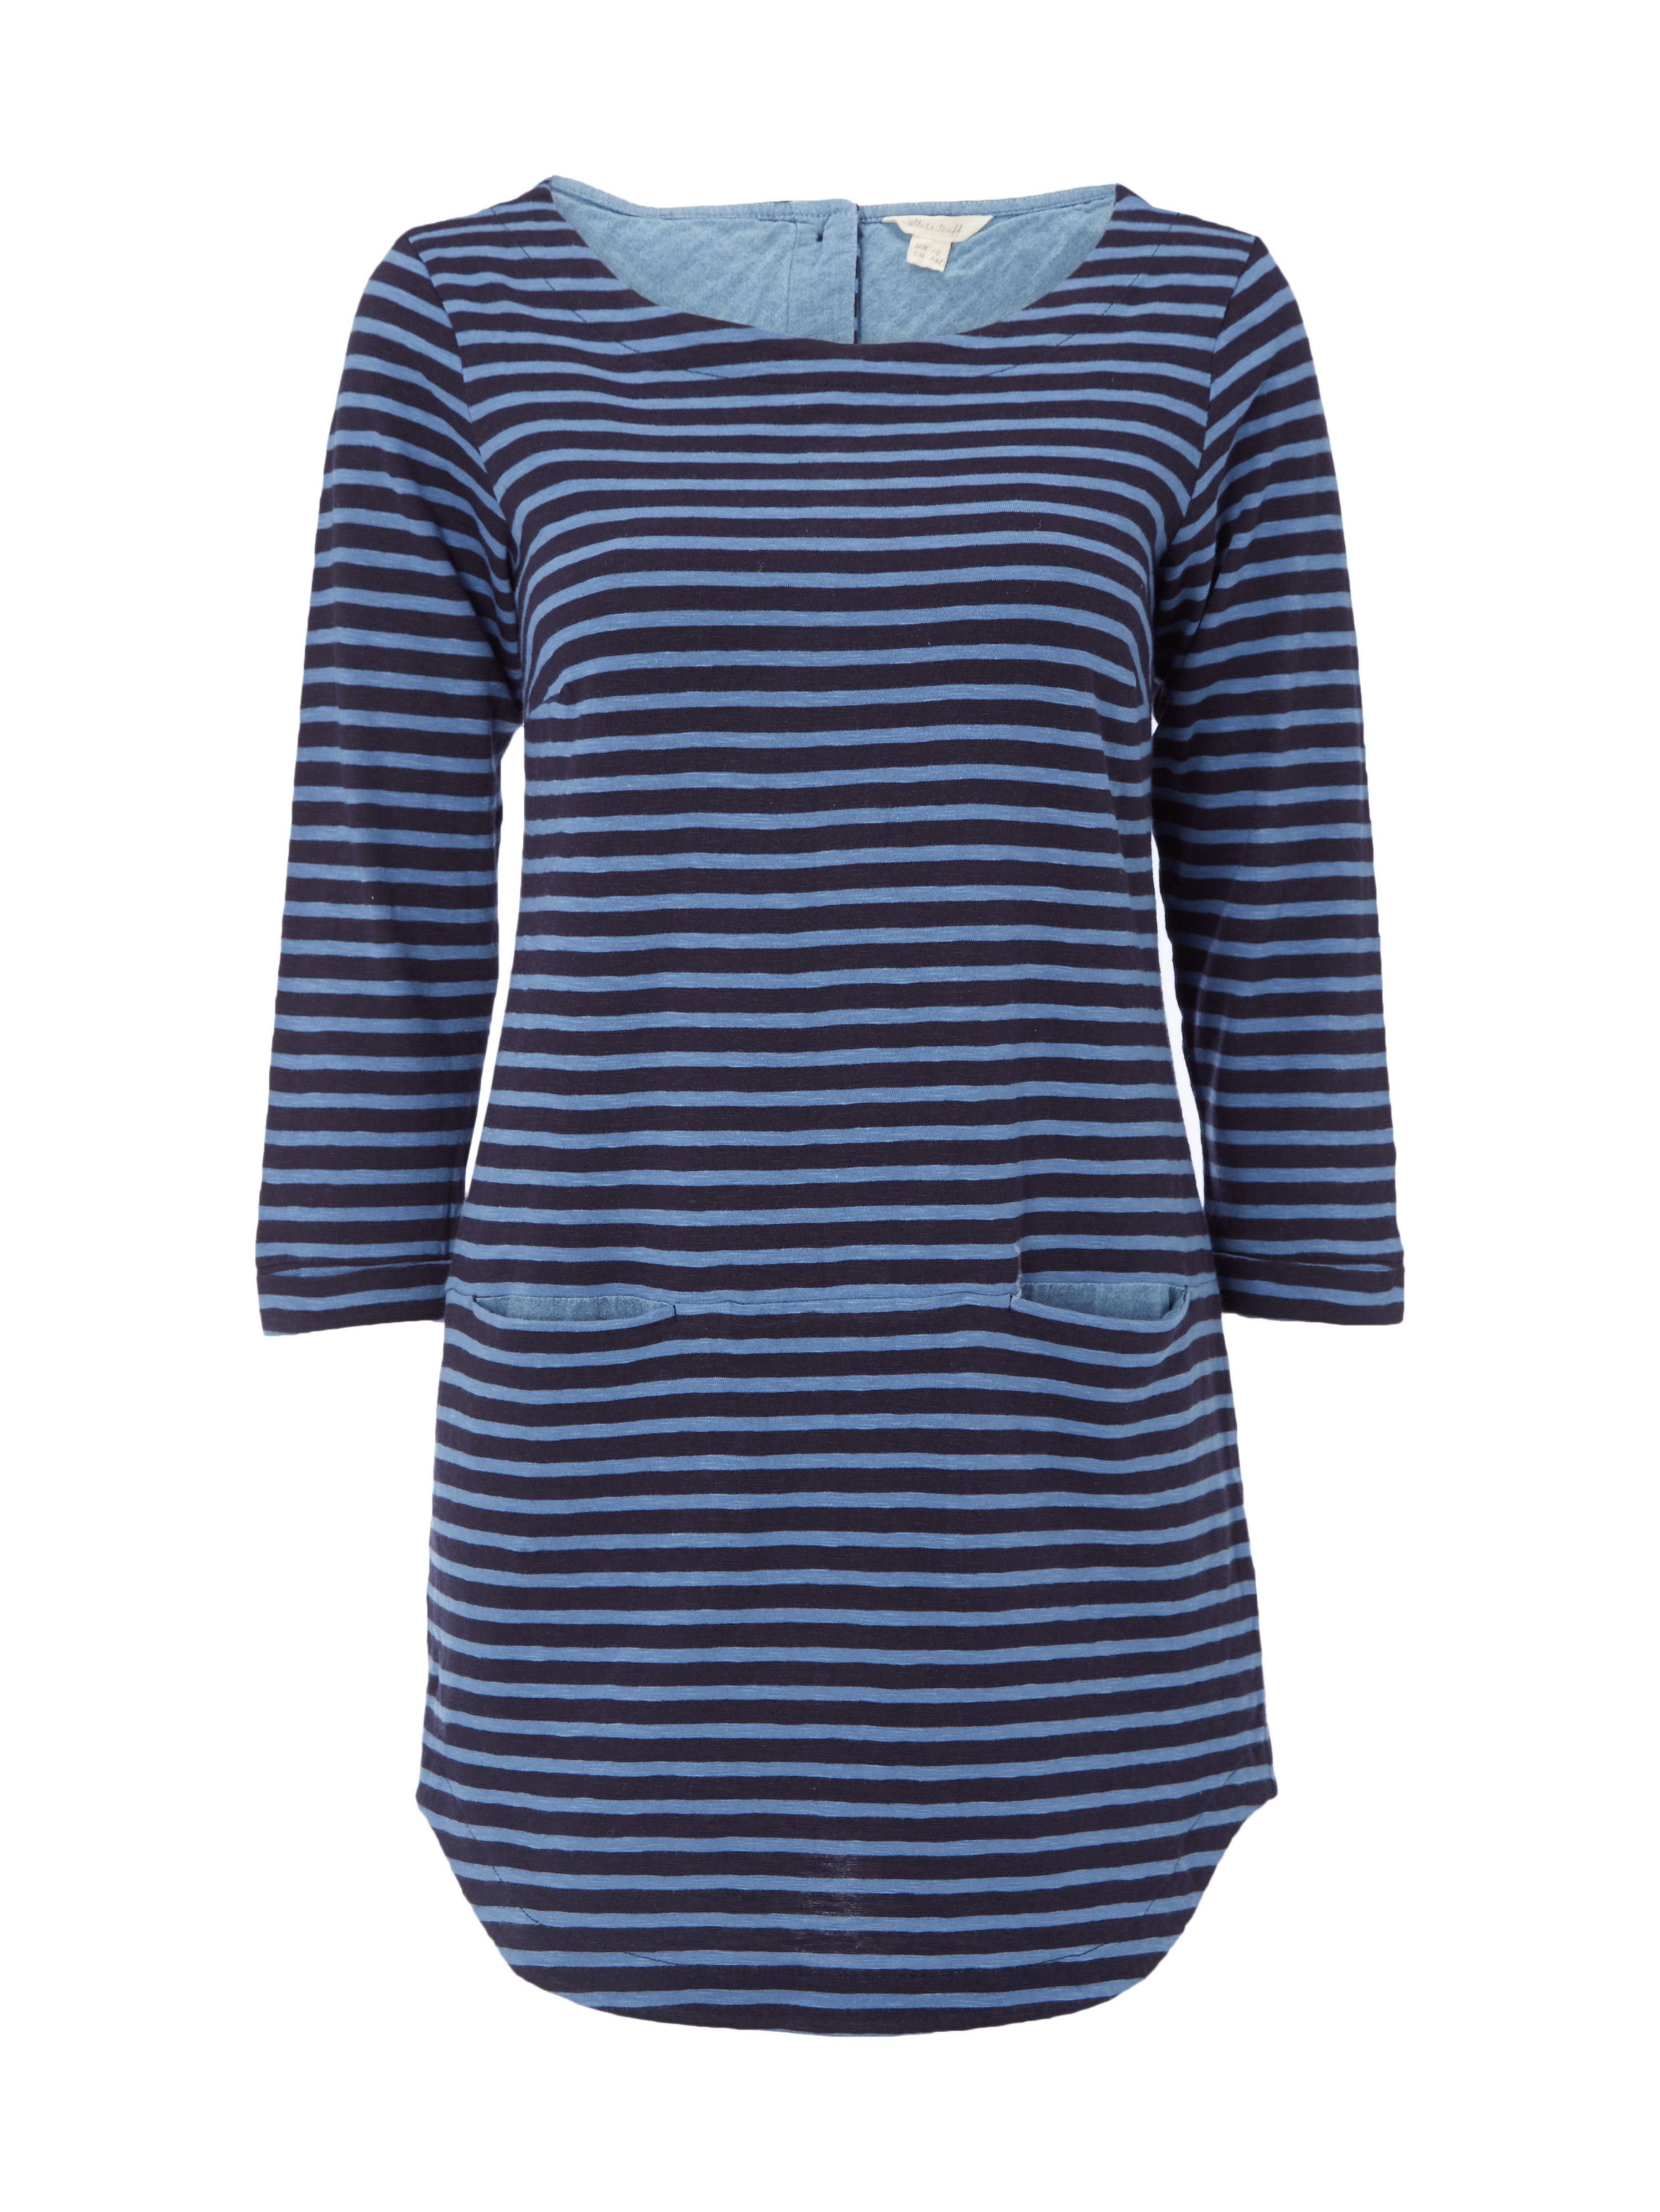 White Stuff Stripe You Jersey Tunic, Blue